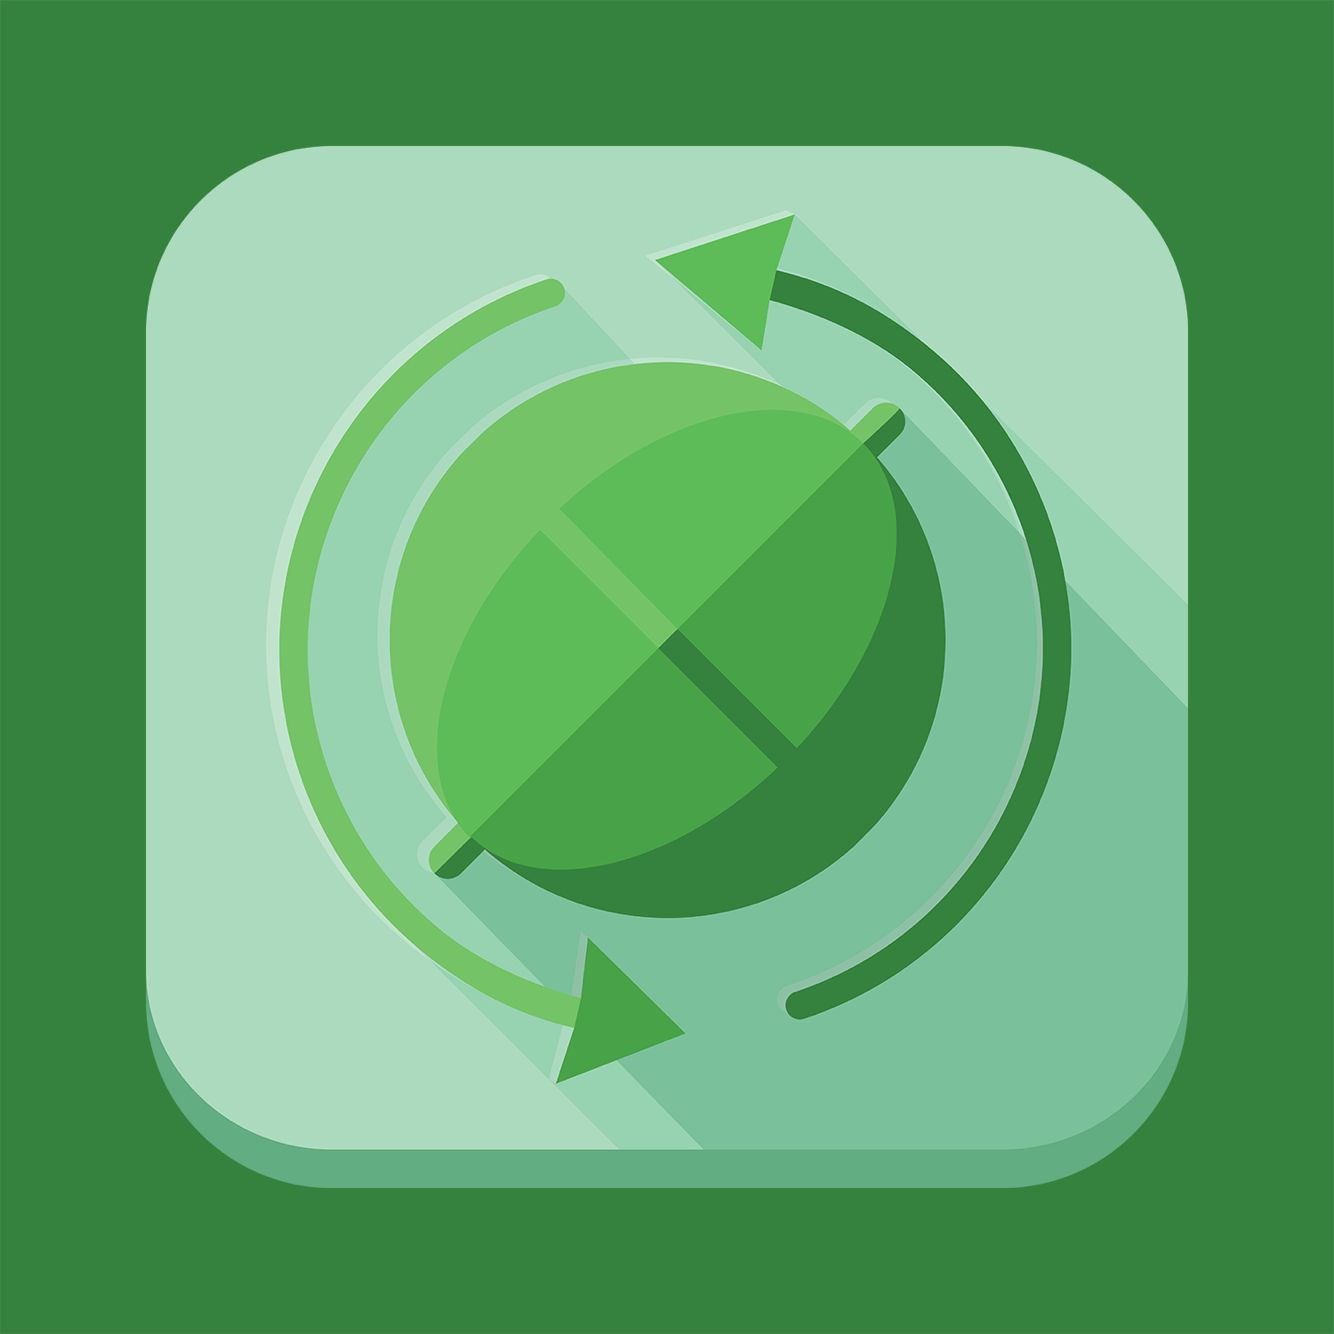 small resolution of update your world icon character illustration chart diagram illustrations style world